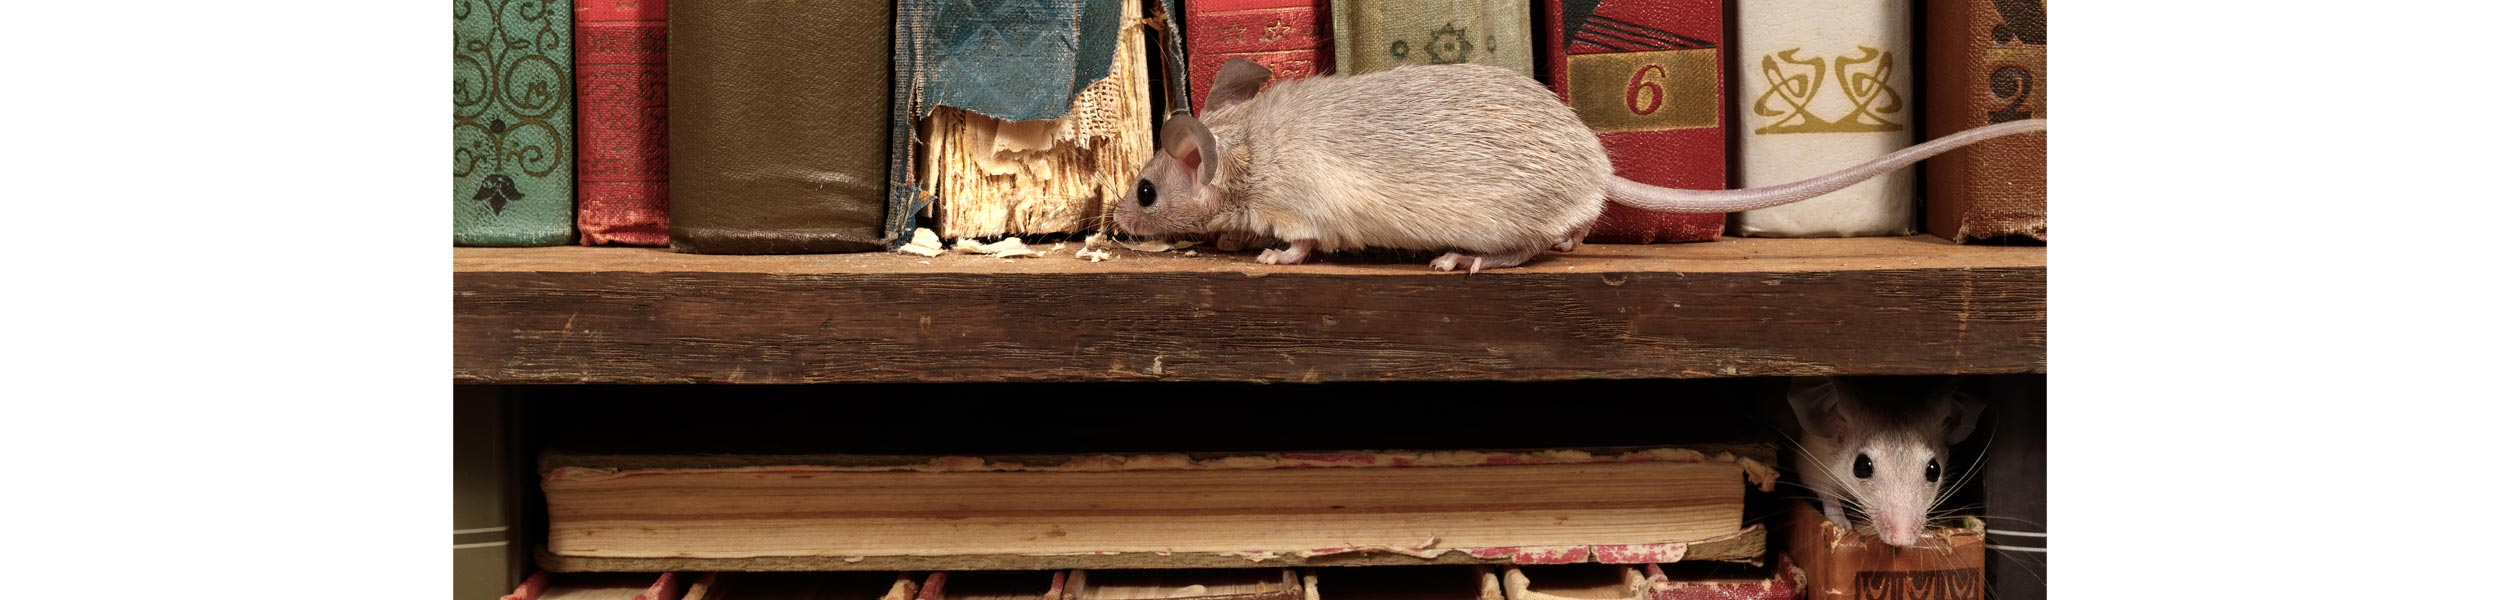 ACE Exterminating-Pest-Control-Rodents-Mouse-Rat-Damge-Eating-Books-Header